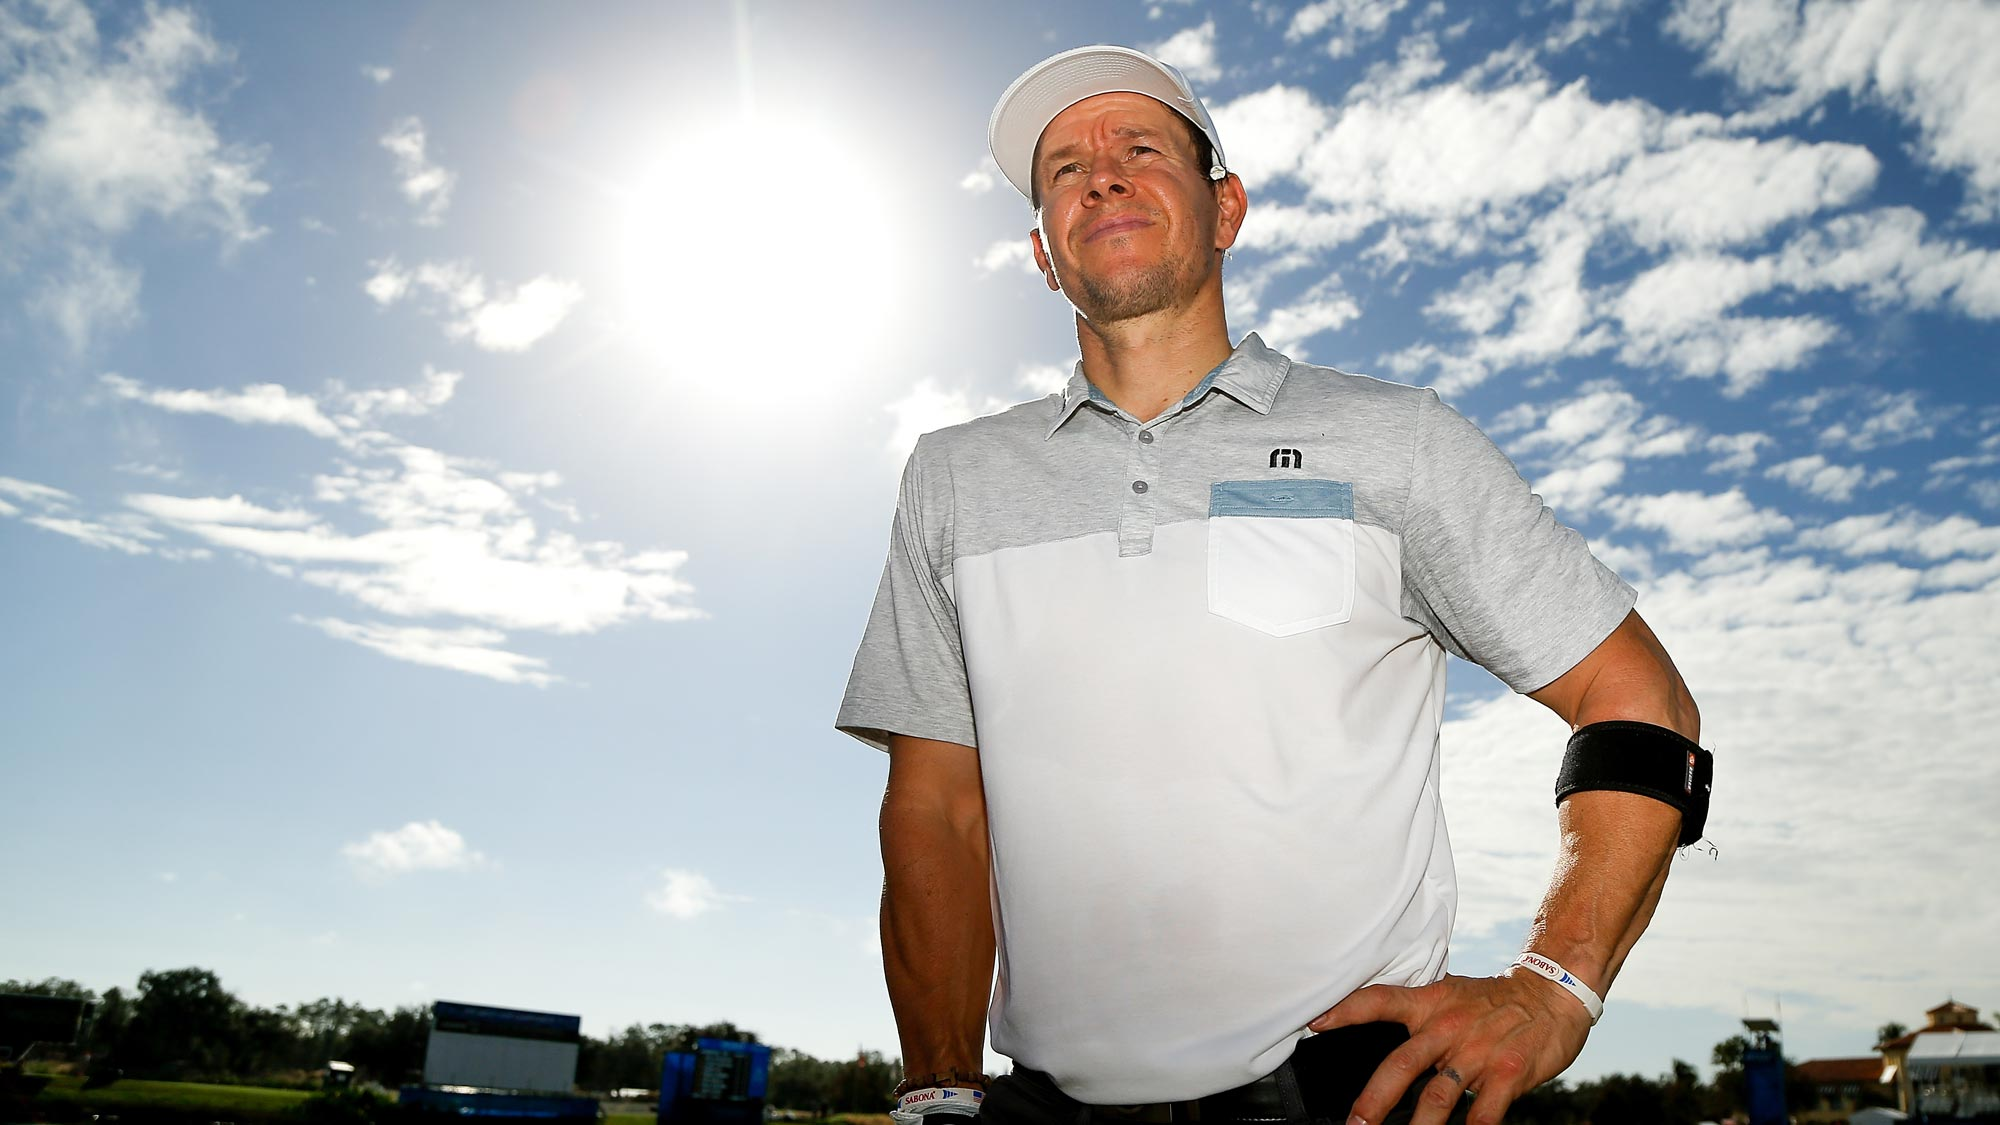 Actor Mark Wahlberg looks on during the CME Group charity event to benefit St. Jude Children's Research Hospital prior to the LPGA CME Group Tour Championship